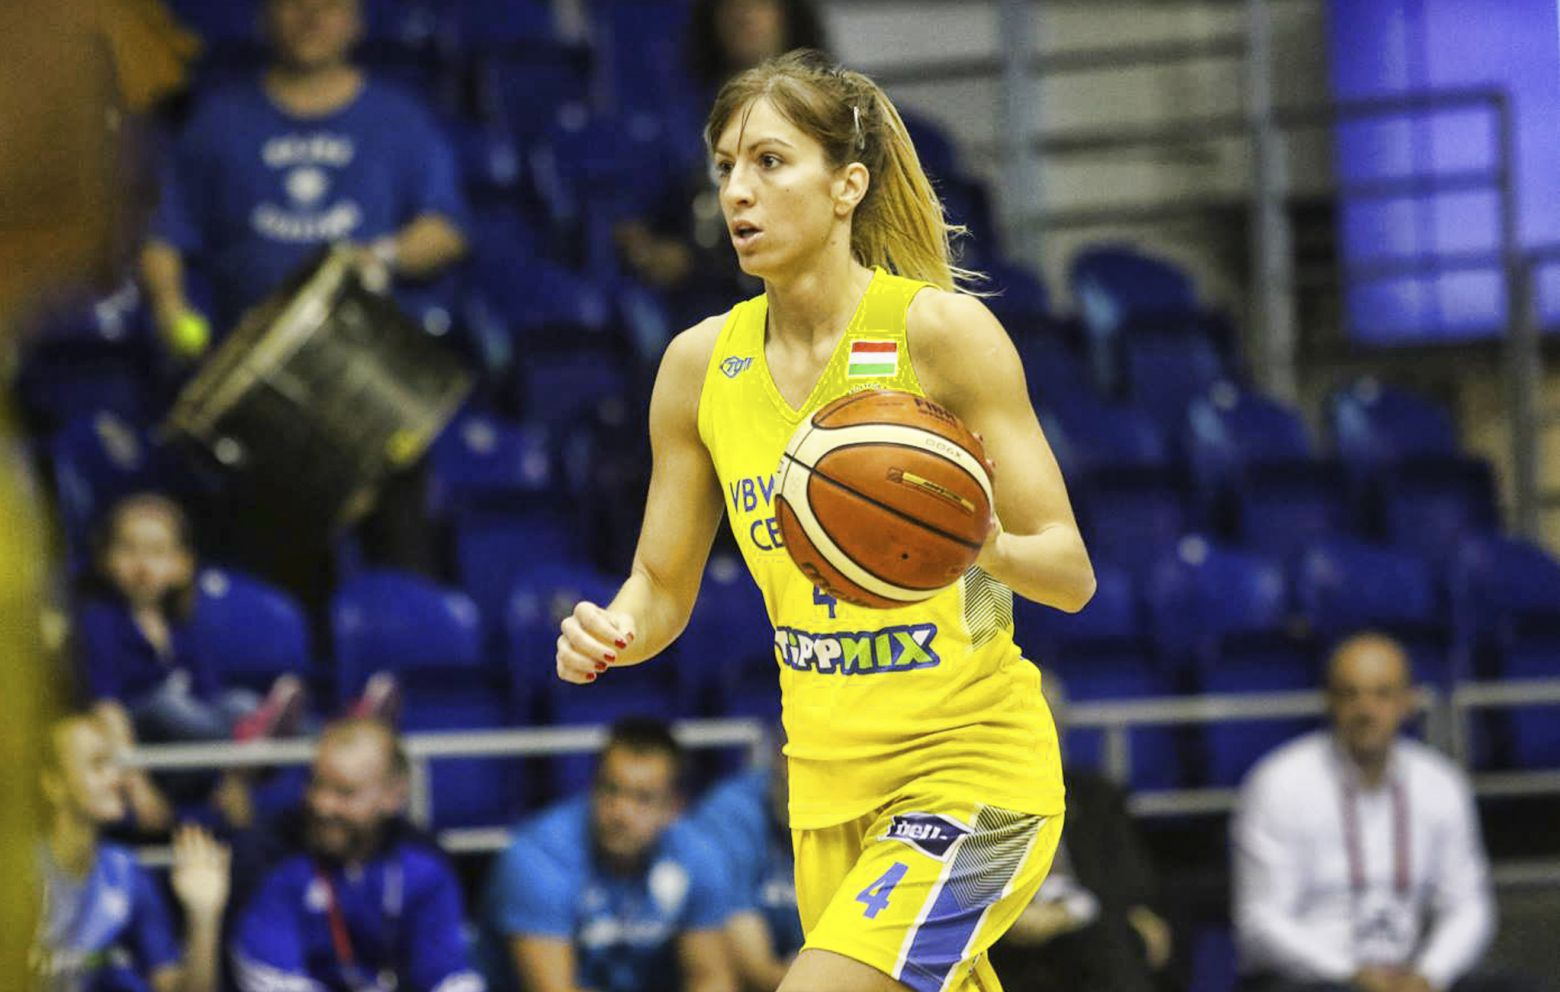 JOVANA POPOVIC has re-signed with CegledI